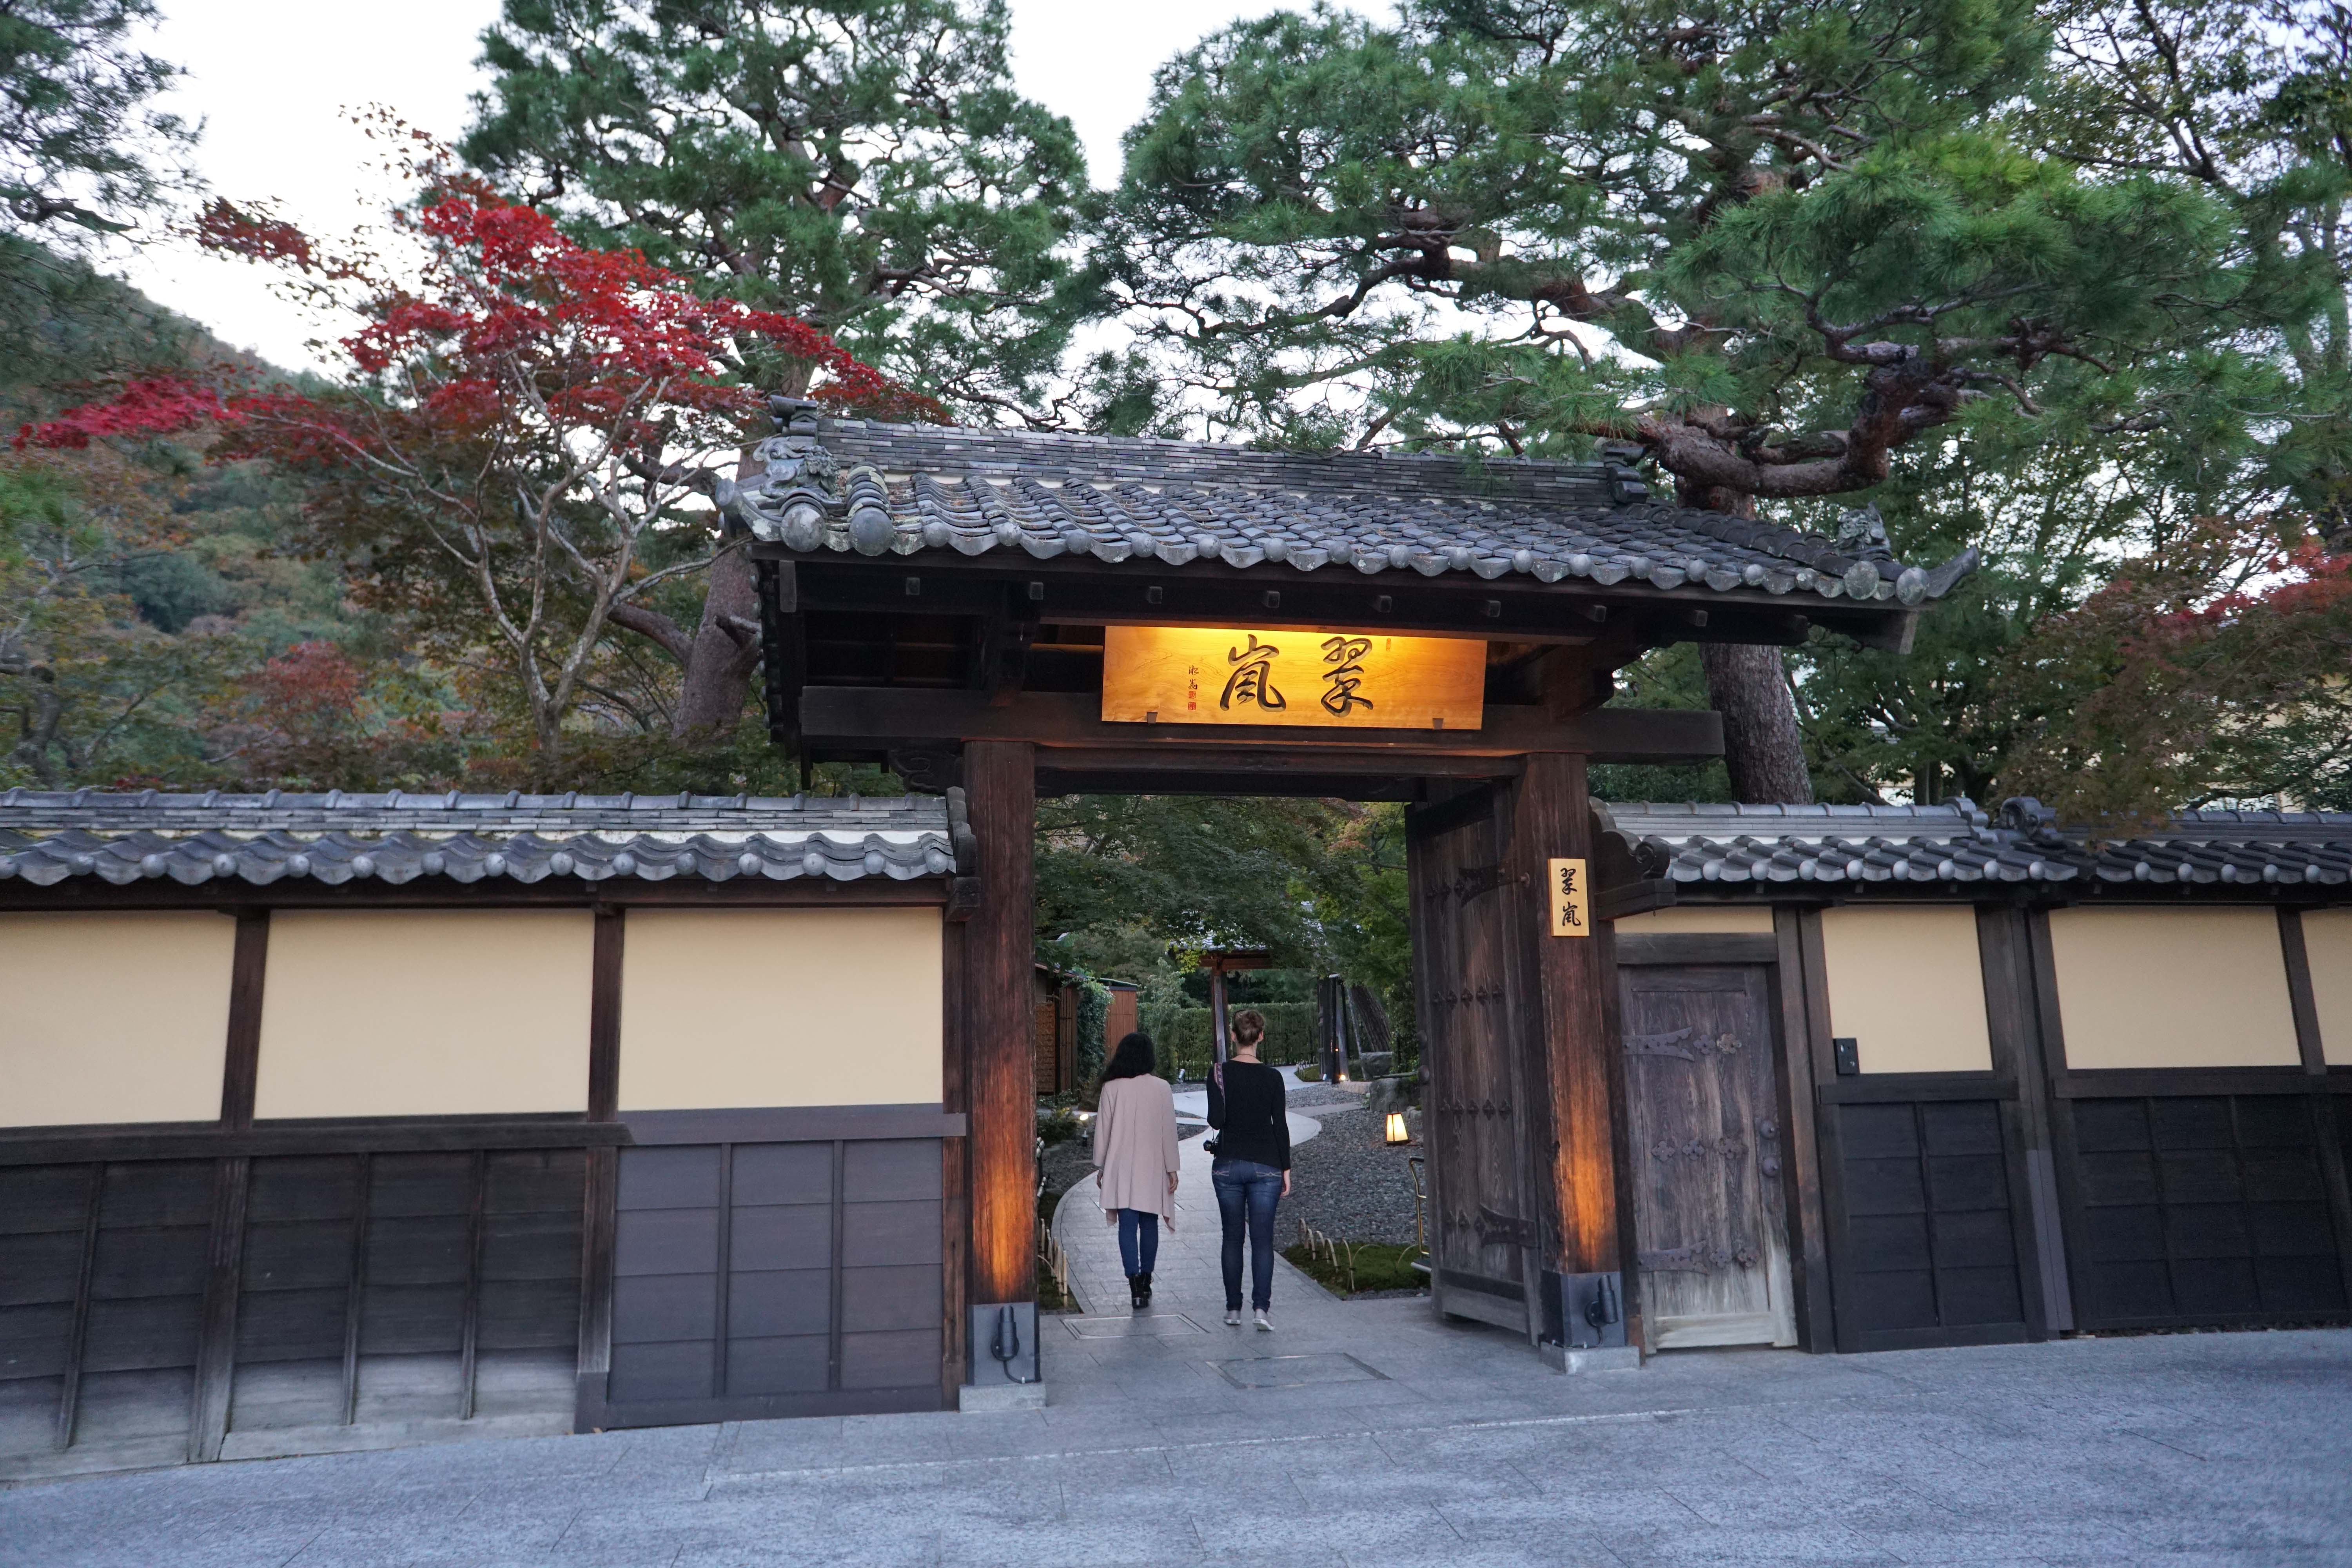 Two women walking into the entrance of the Suiran Hotel, Kyoto